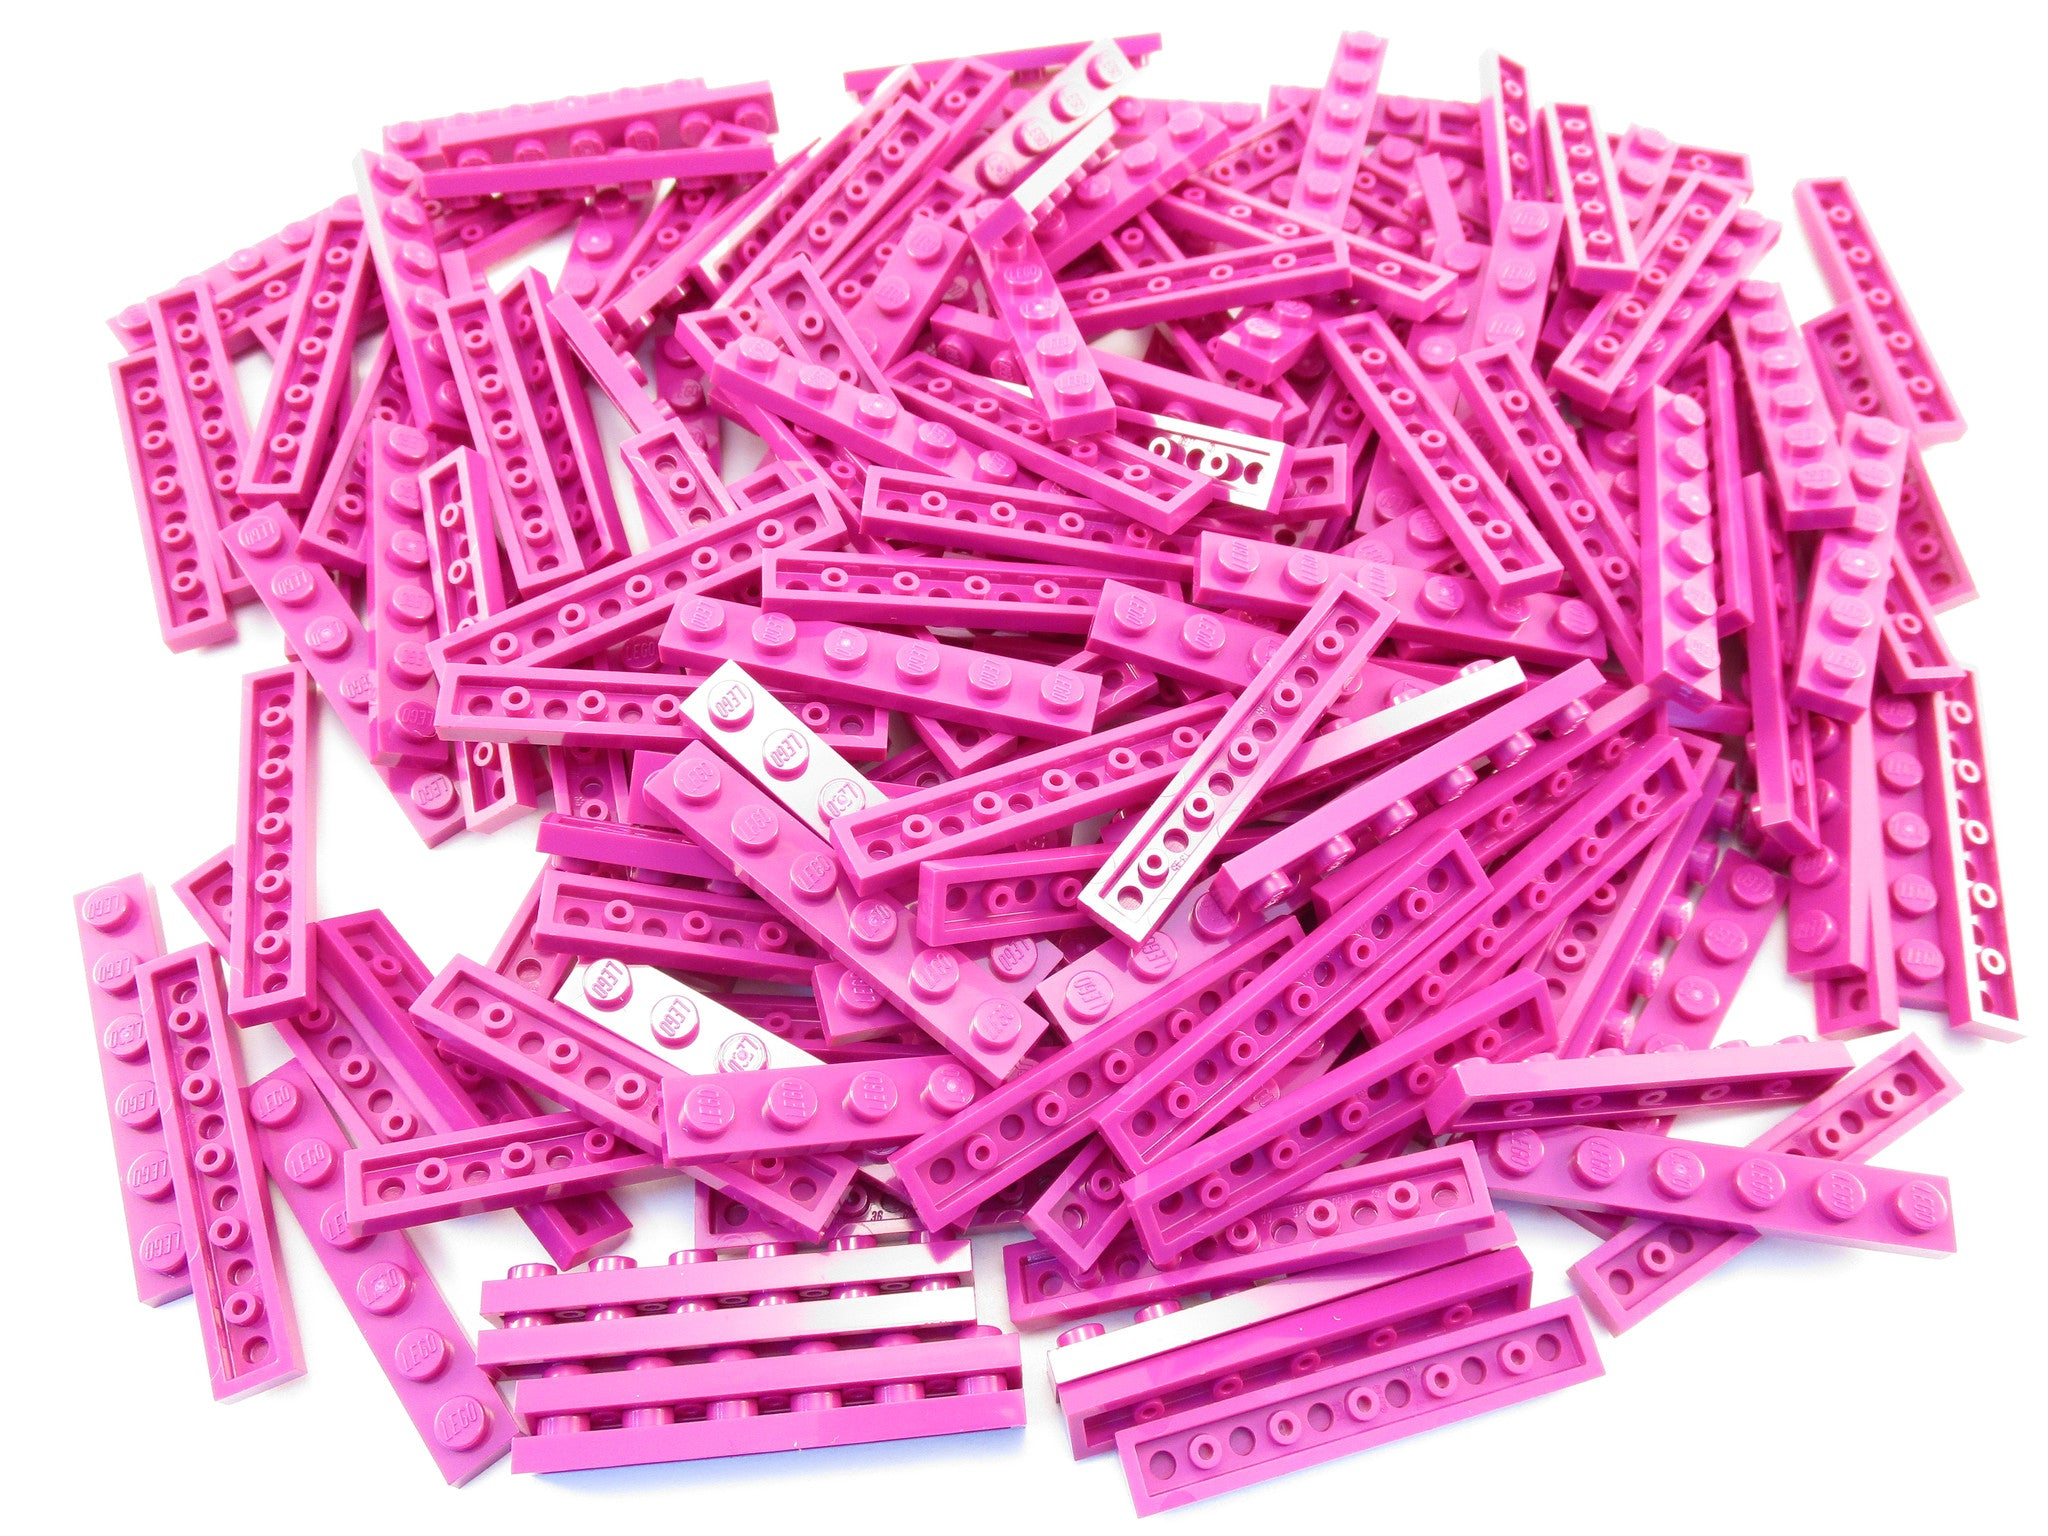 LEGO Magenta Plate 1x6 Lot of 100 Parts Pieces 3666